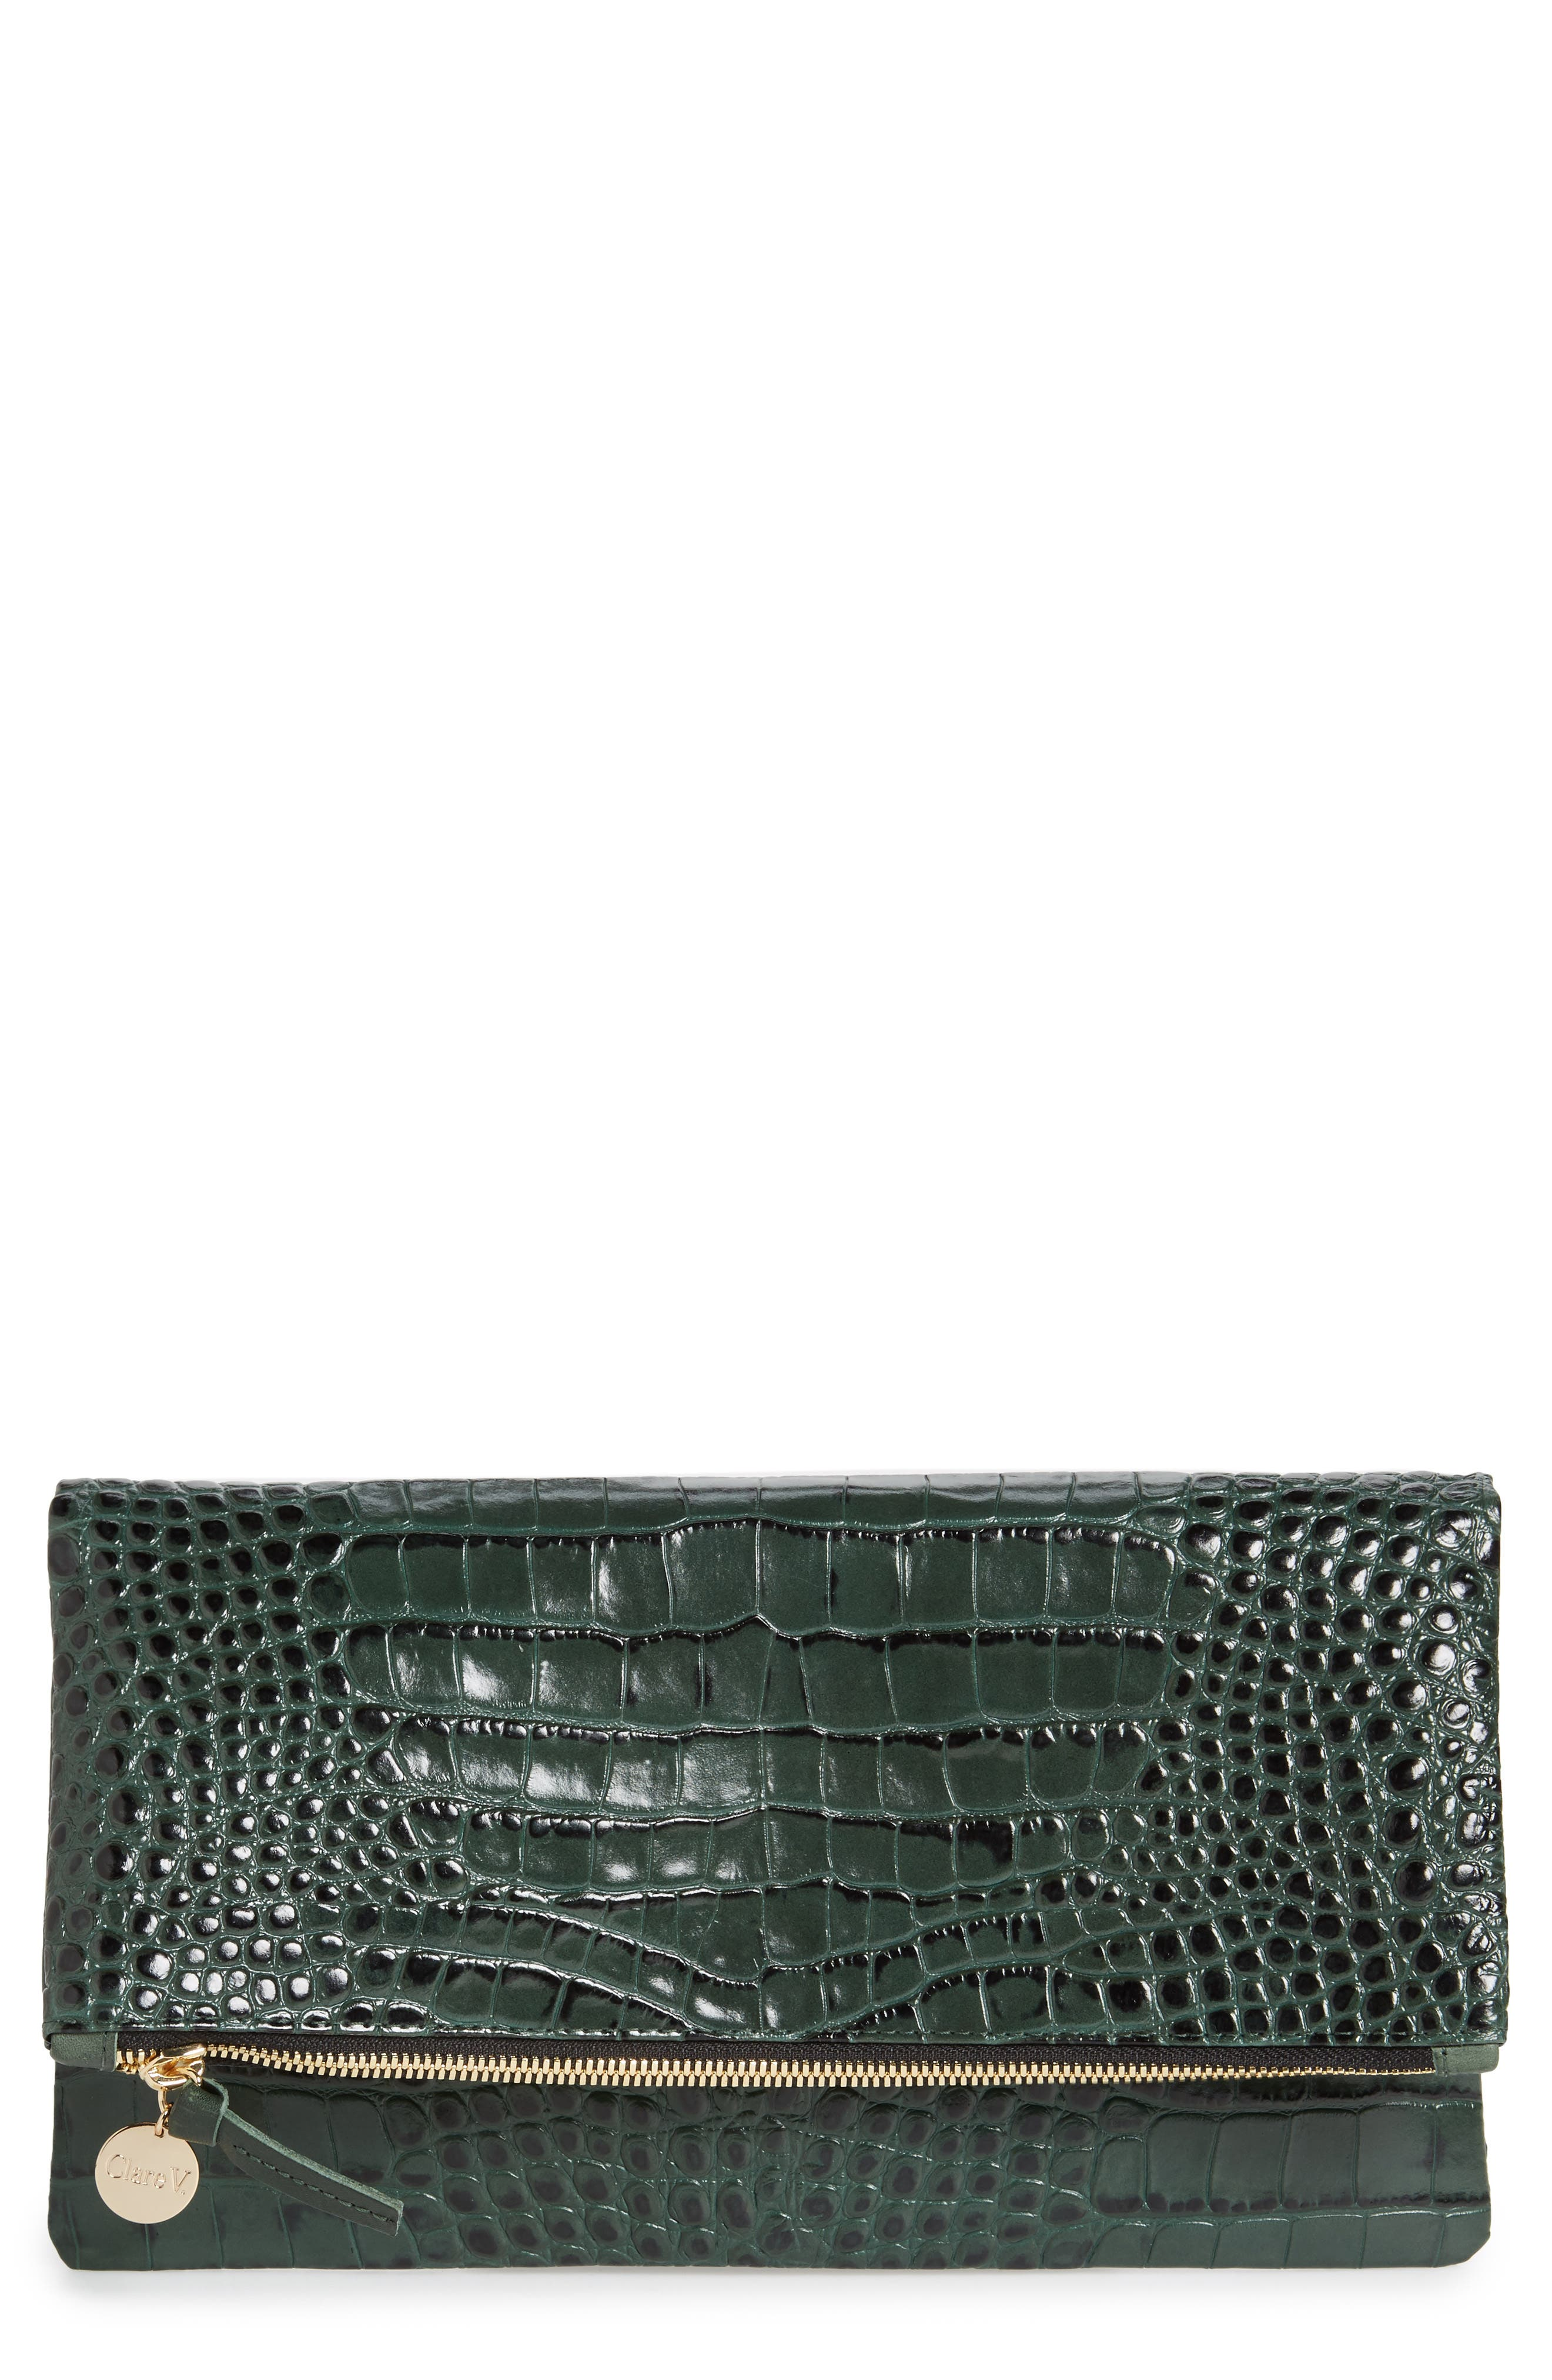 Main Image - Clare V. Croc Embossed Leather Foldover Clutch